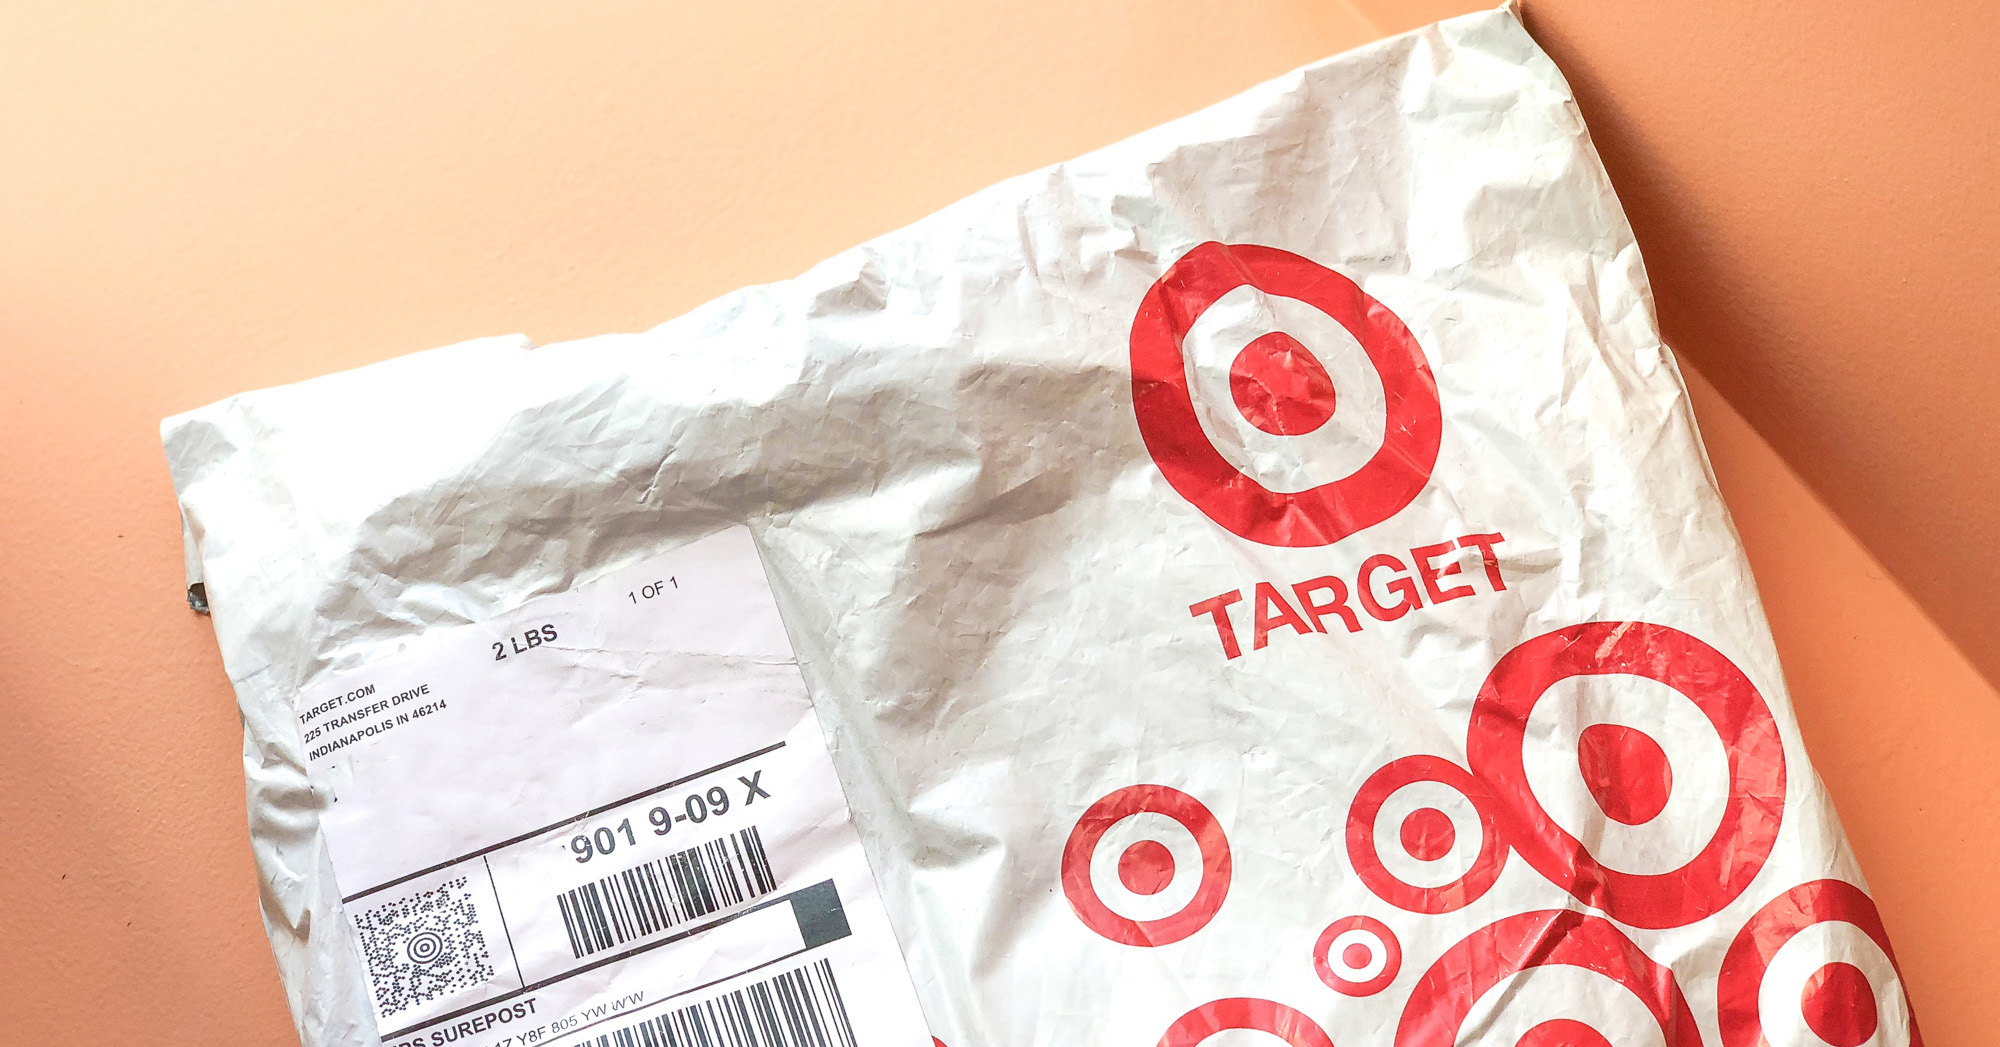 If You Shop at Target, This Clever Trick Can Save You Serious Cash